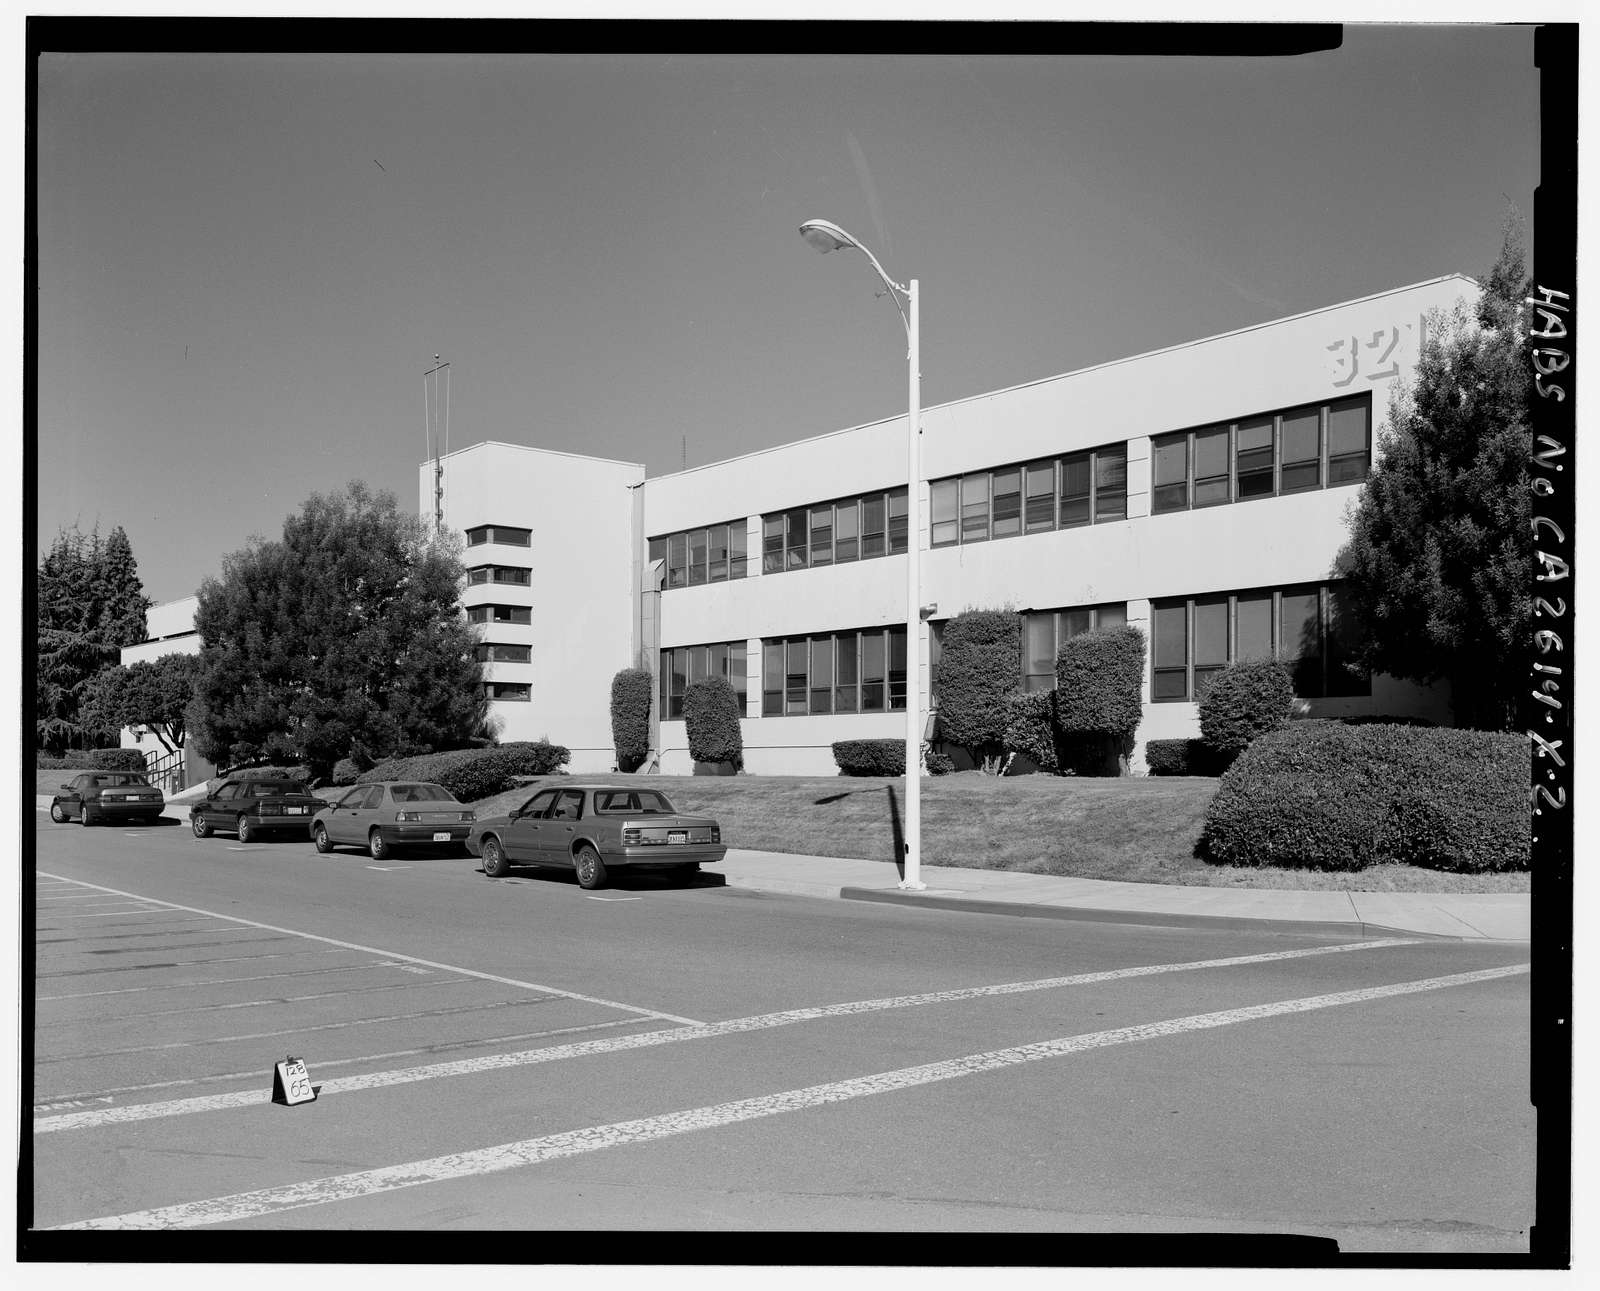 Oakland Naval Supply Center, Administration Building, Between D & E Streets, West of Fourth Street, Oakland, Alameda County, CA